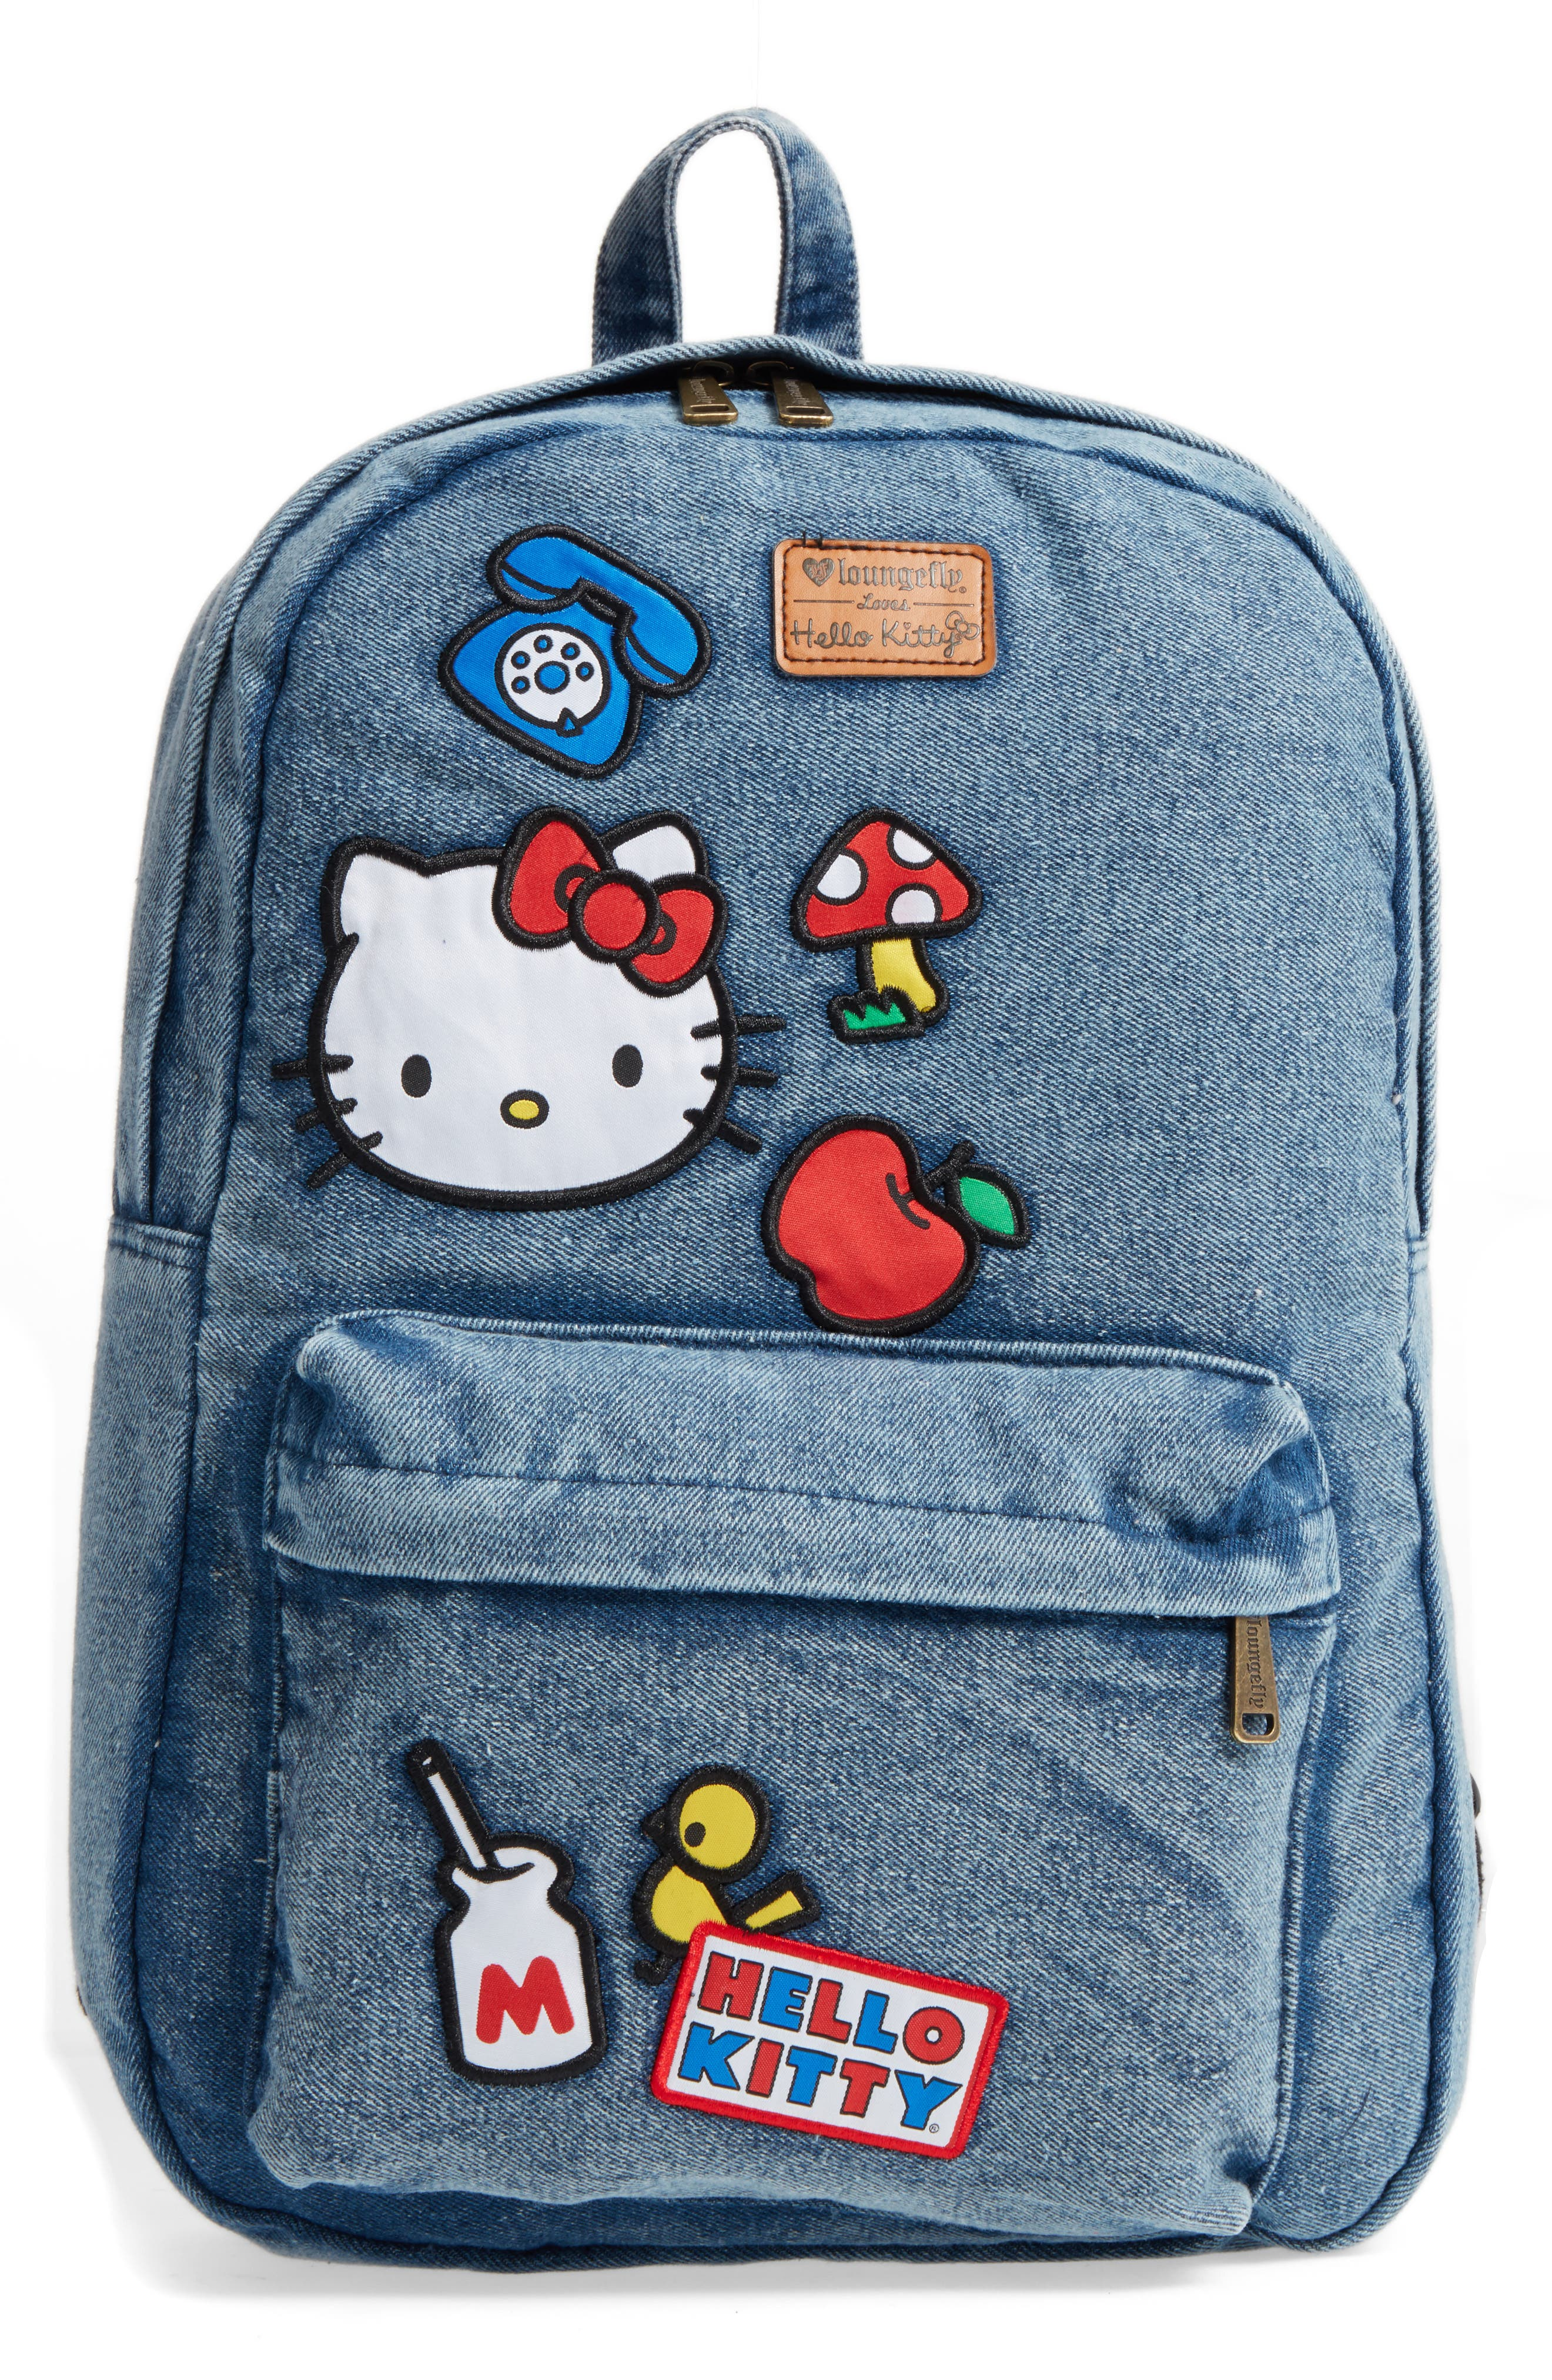 Alternate Image 1 Selected - Loungefly Hello Kitty® Patch Denim Backpack (Kids)